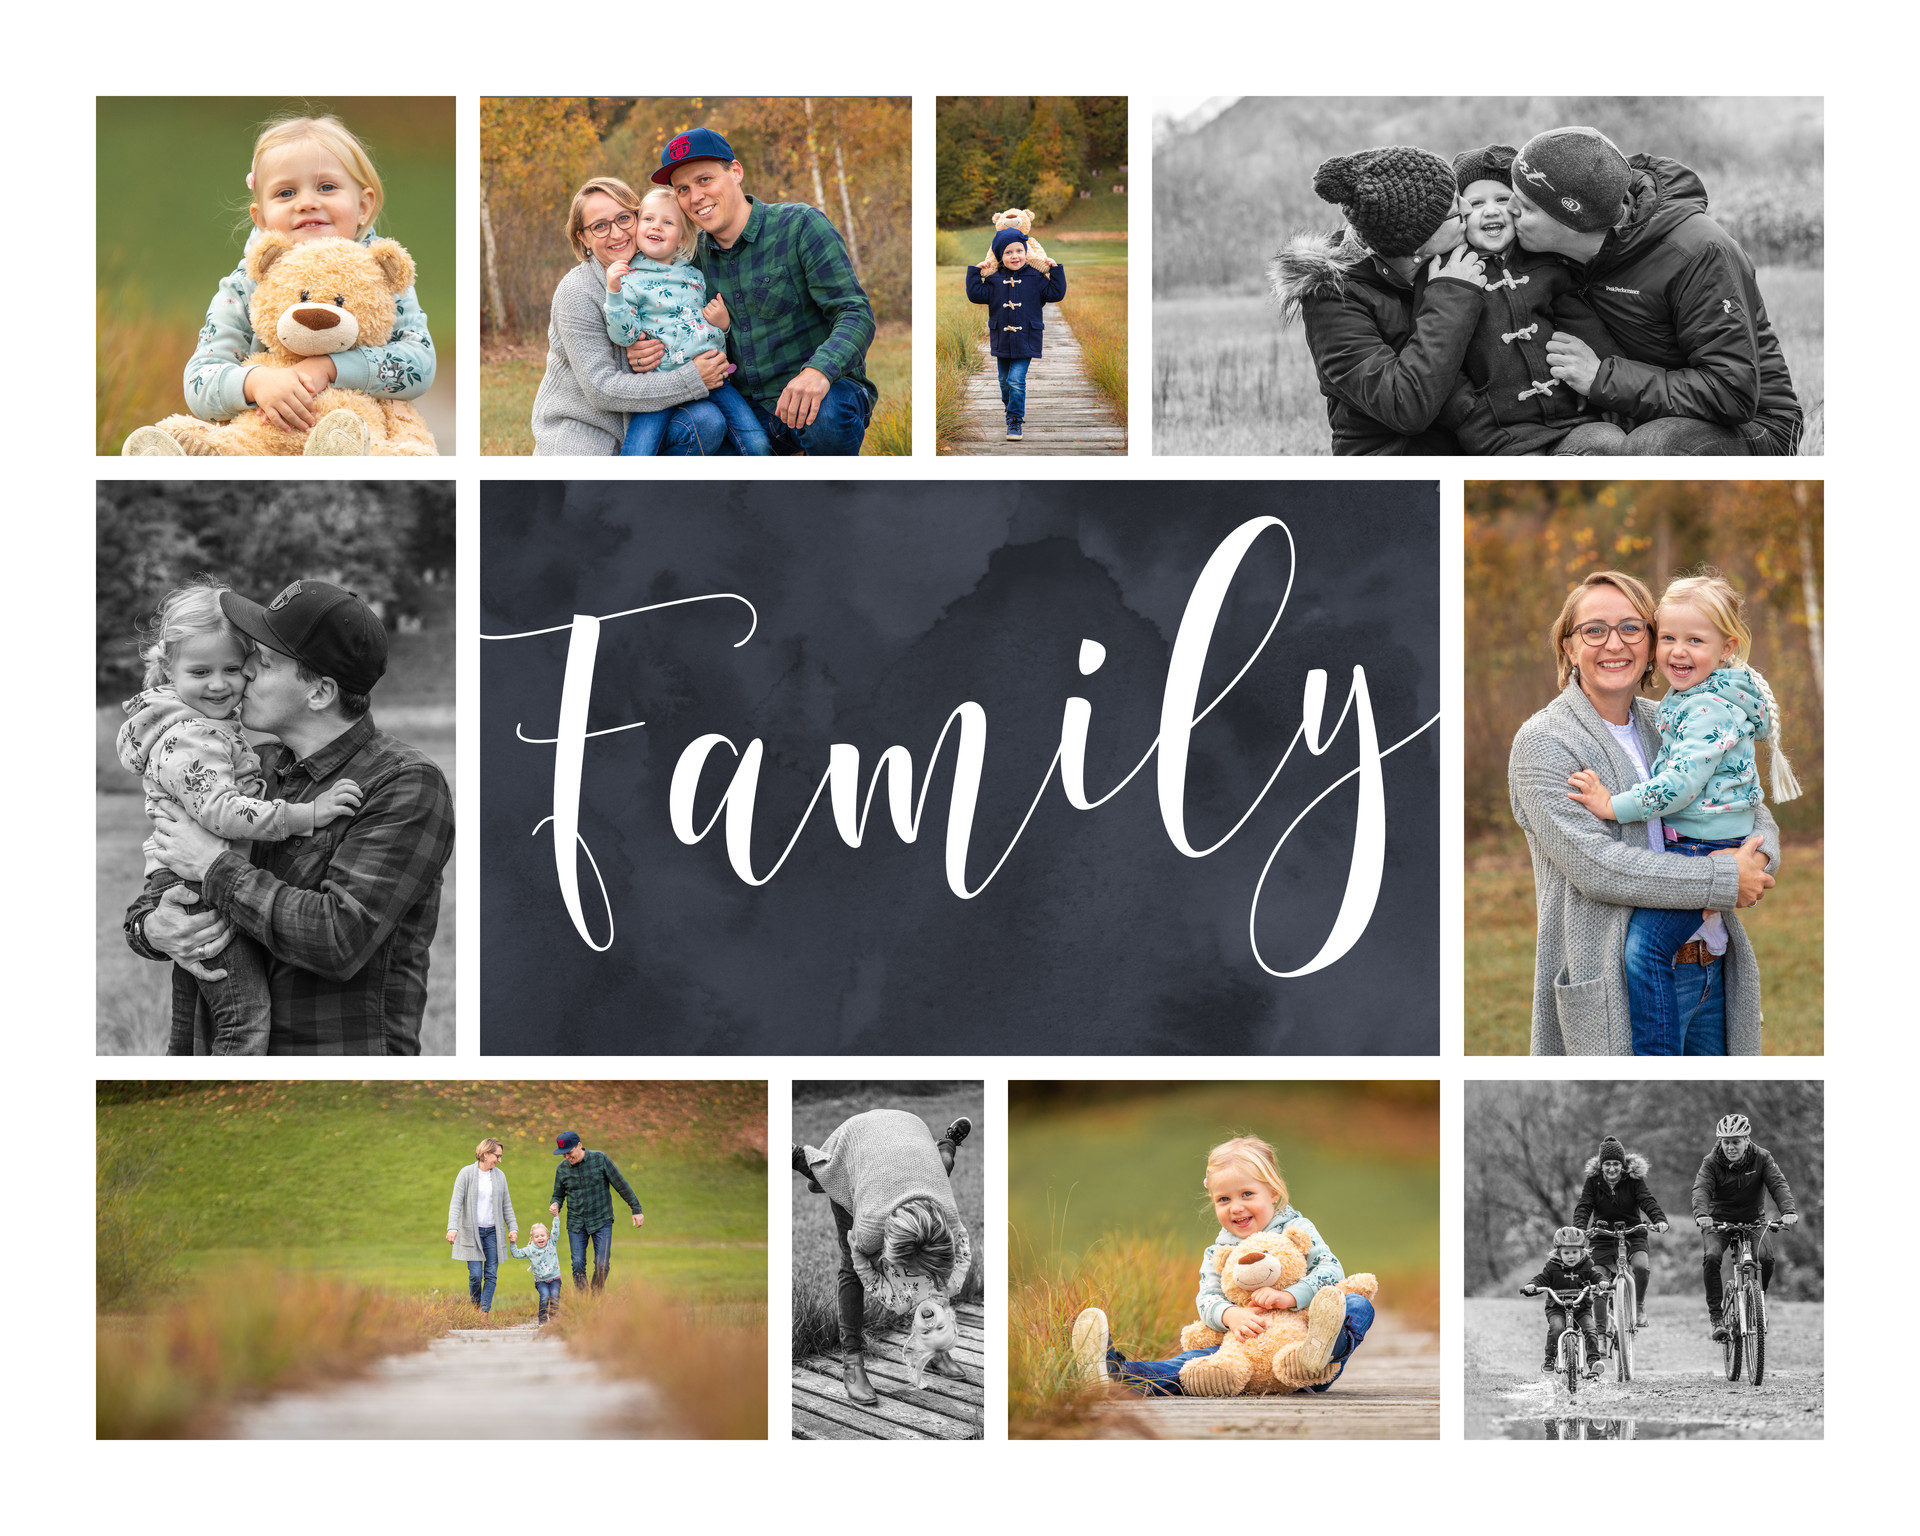 Collage Familienshooting outdoor.jpg